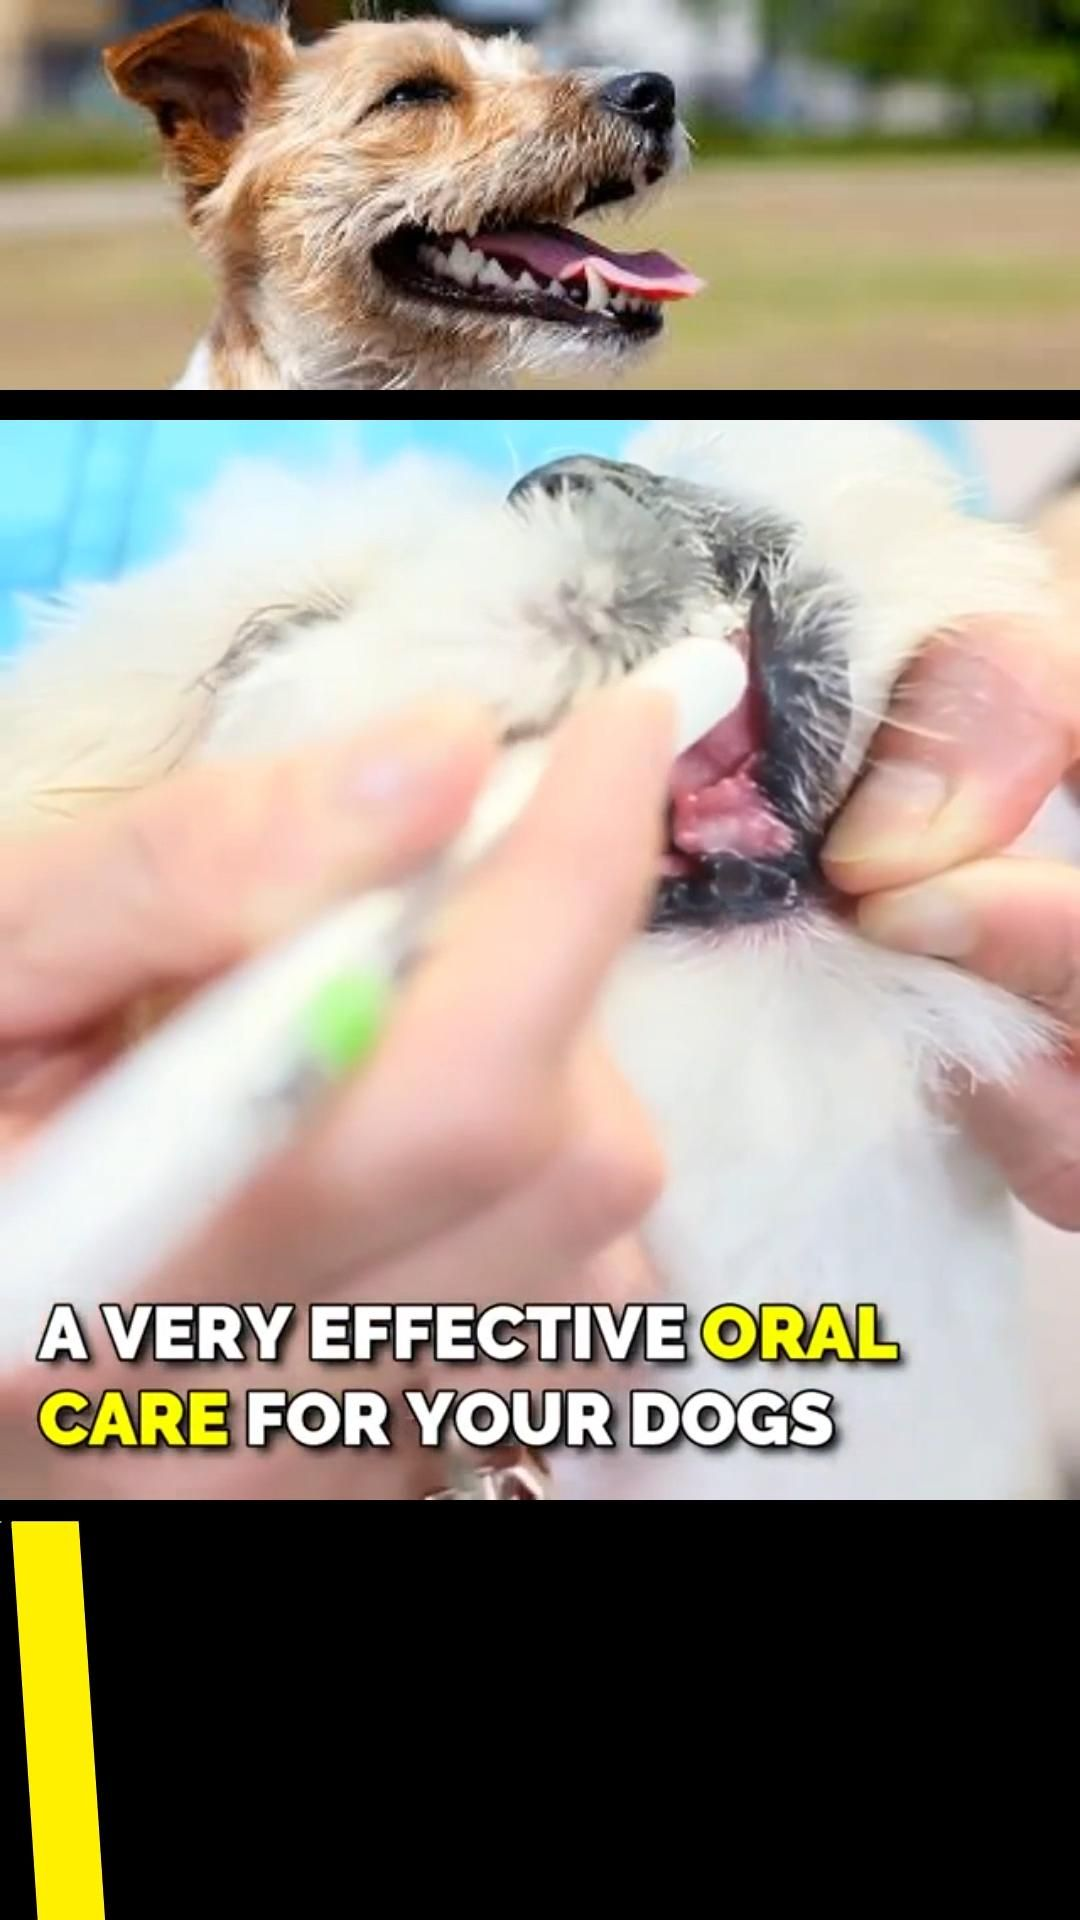 🐶 Your pet's bad breath is a bigger problem than you thought! Stop periodontal disease in its tracks. Stop harmful bacteria into your pet's organs with this Pet Teeth Repairing Kit. ⭐⭐⭐⭐⭐ Recommended by the Vet Community of Dental Care #dog #dogs #doglover #doglife #doglovers #dogtraining